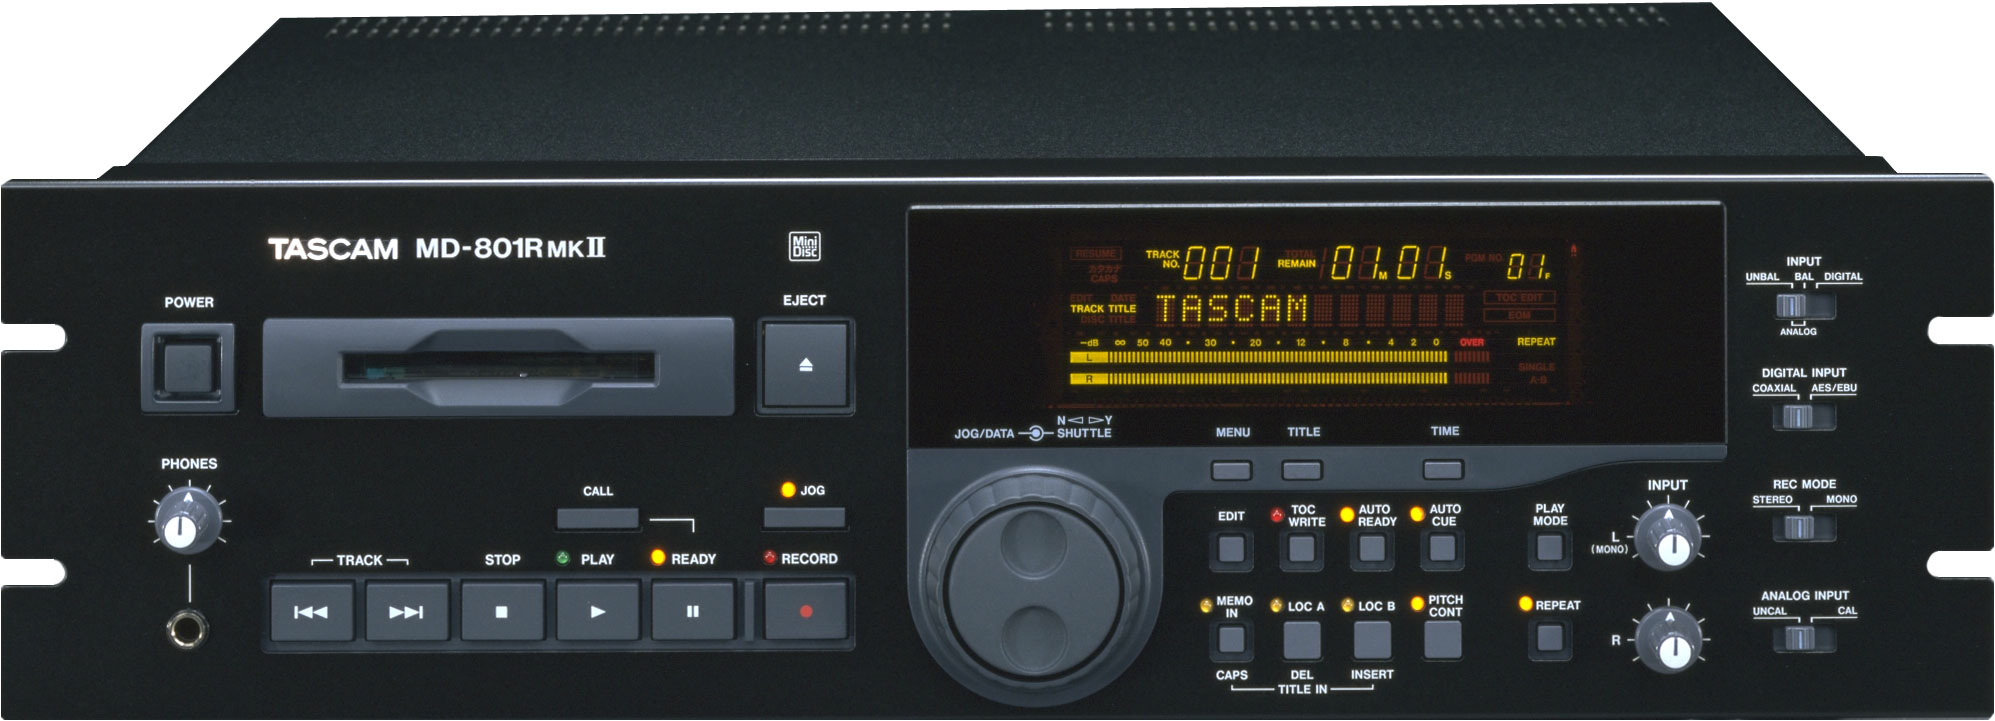 md community page  tascam professional